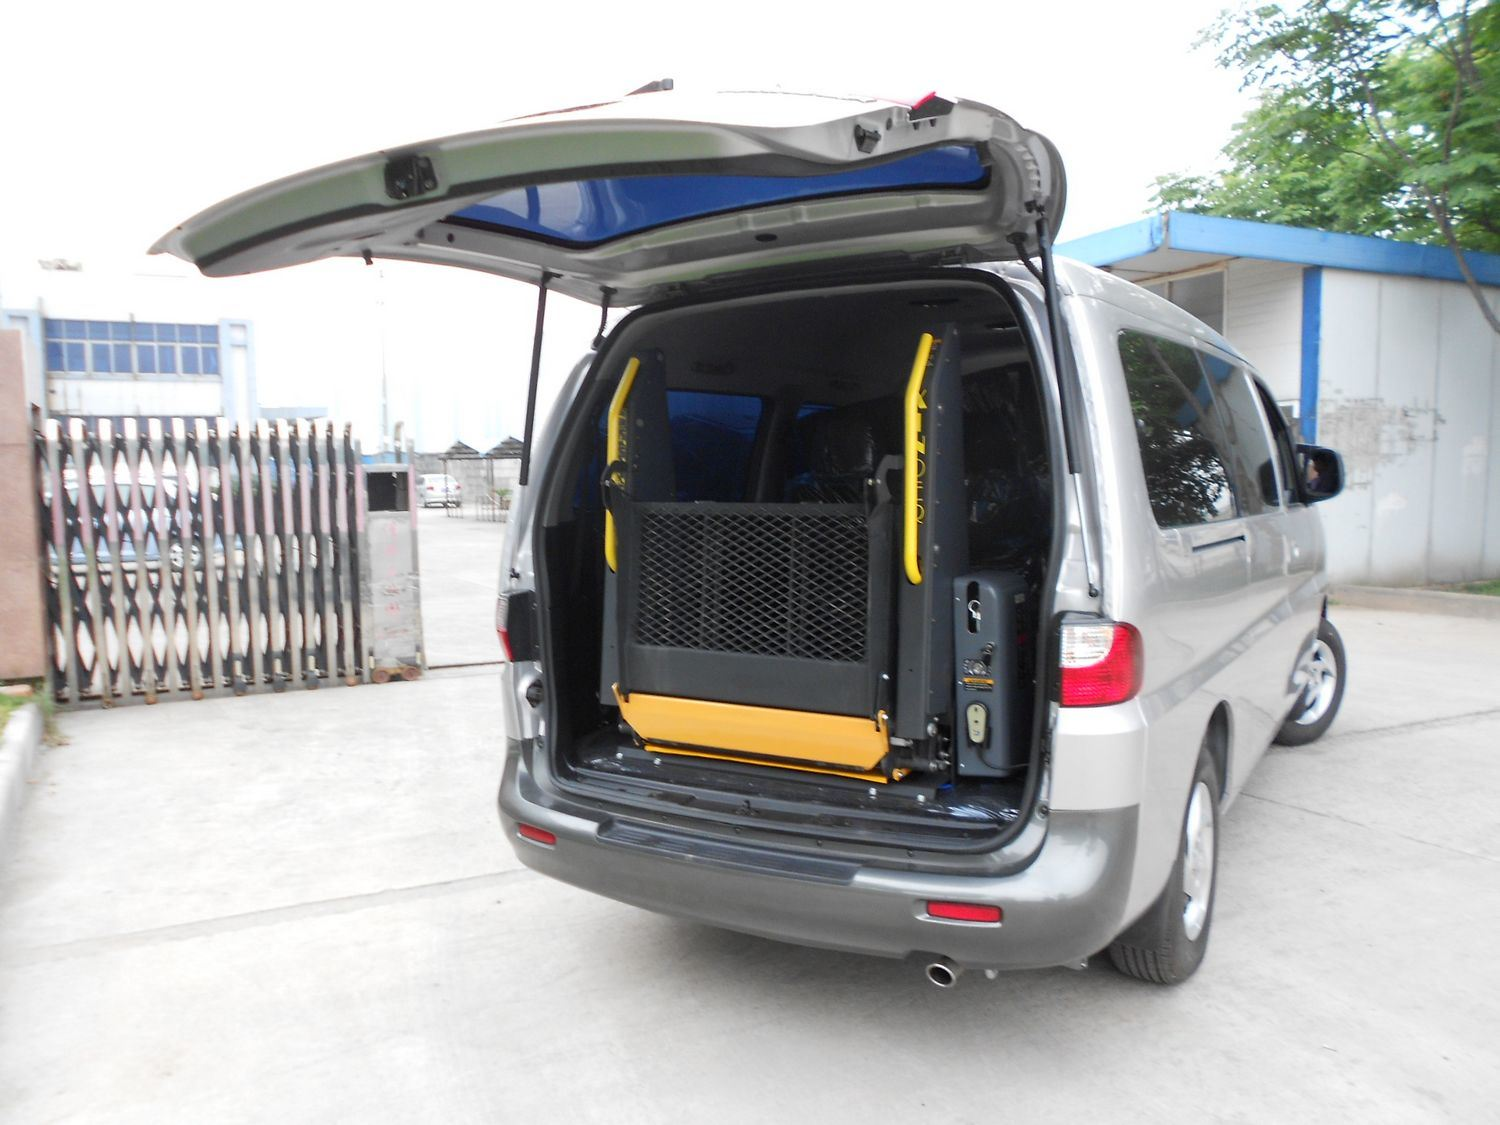 Hydraulic Wheelchair Lifts For Vans : China ce hydraulic wheelchair lift for van photos